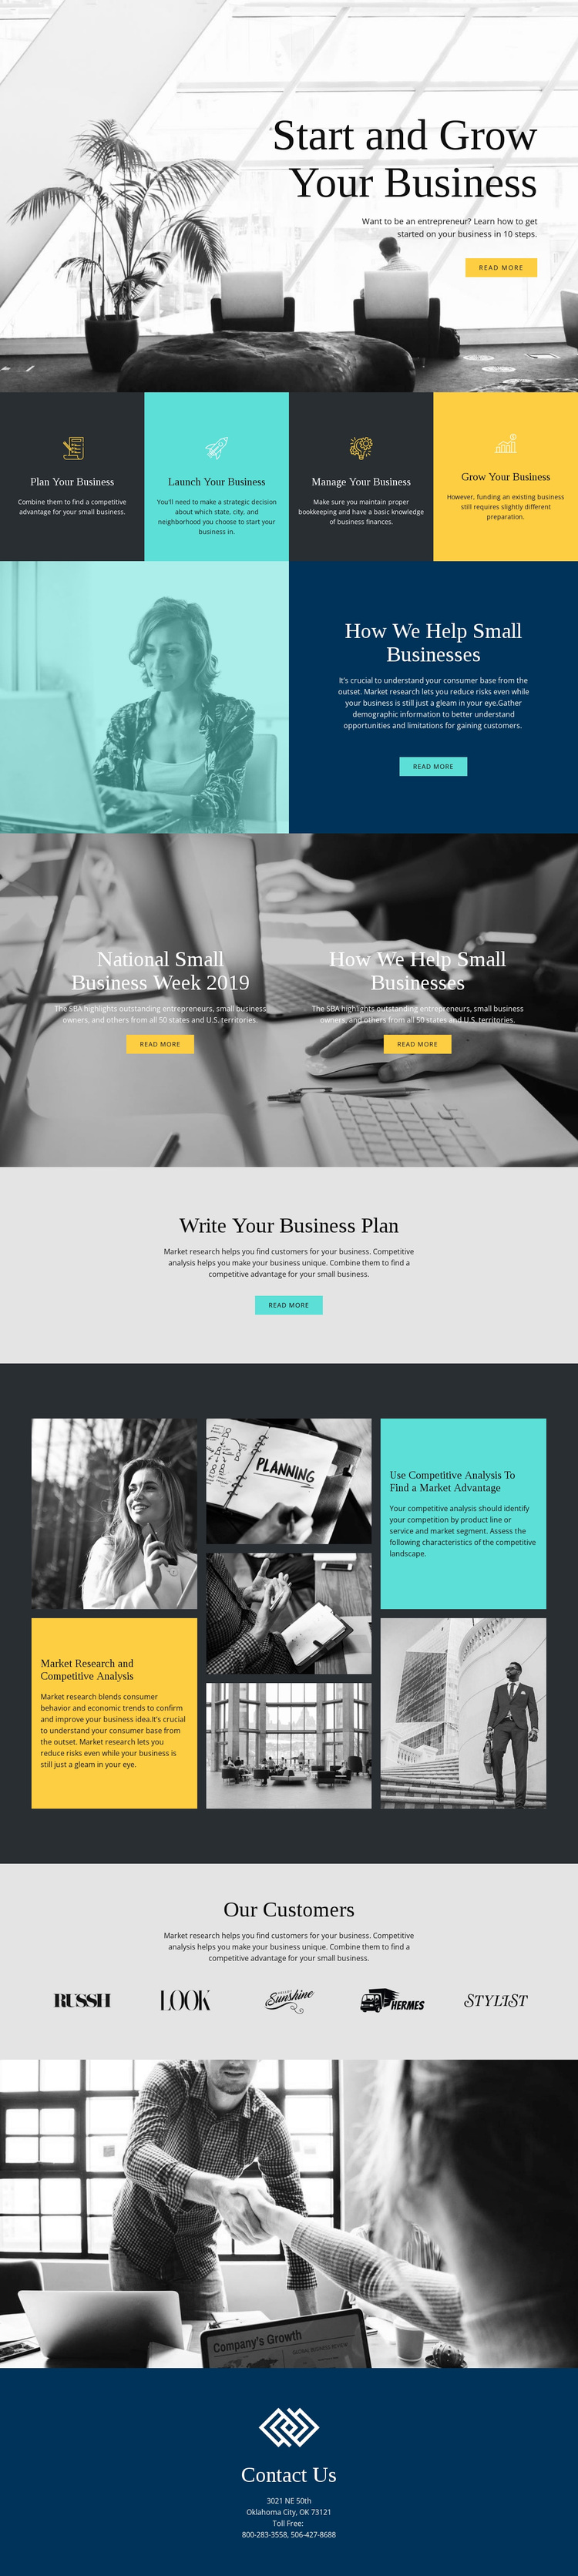 Start and grow your business Template